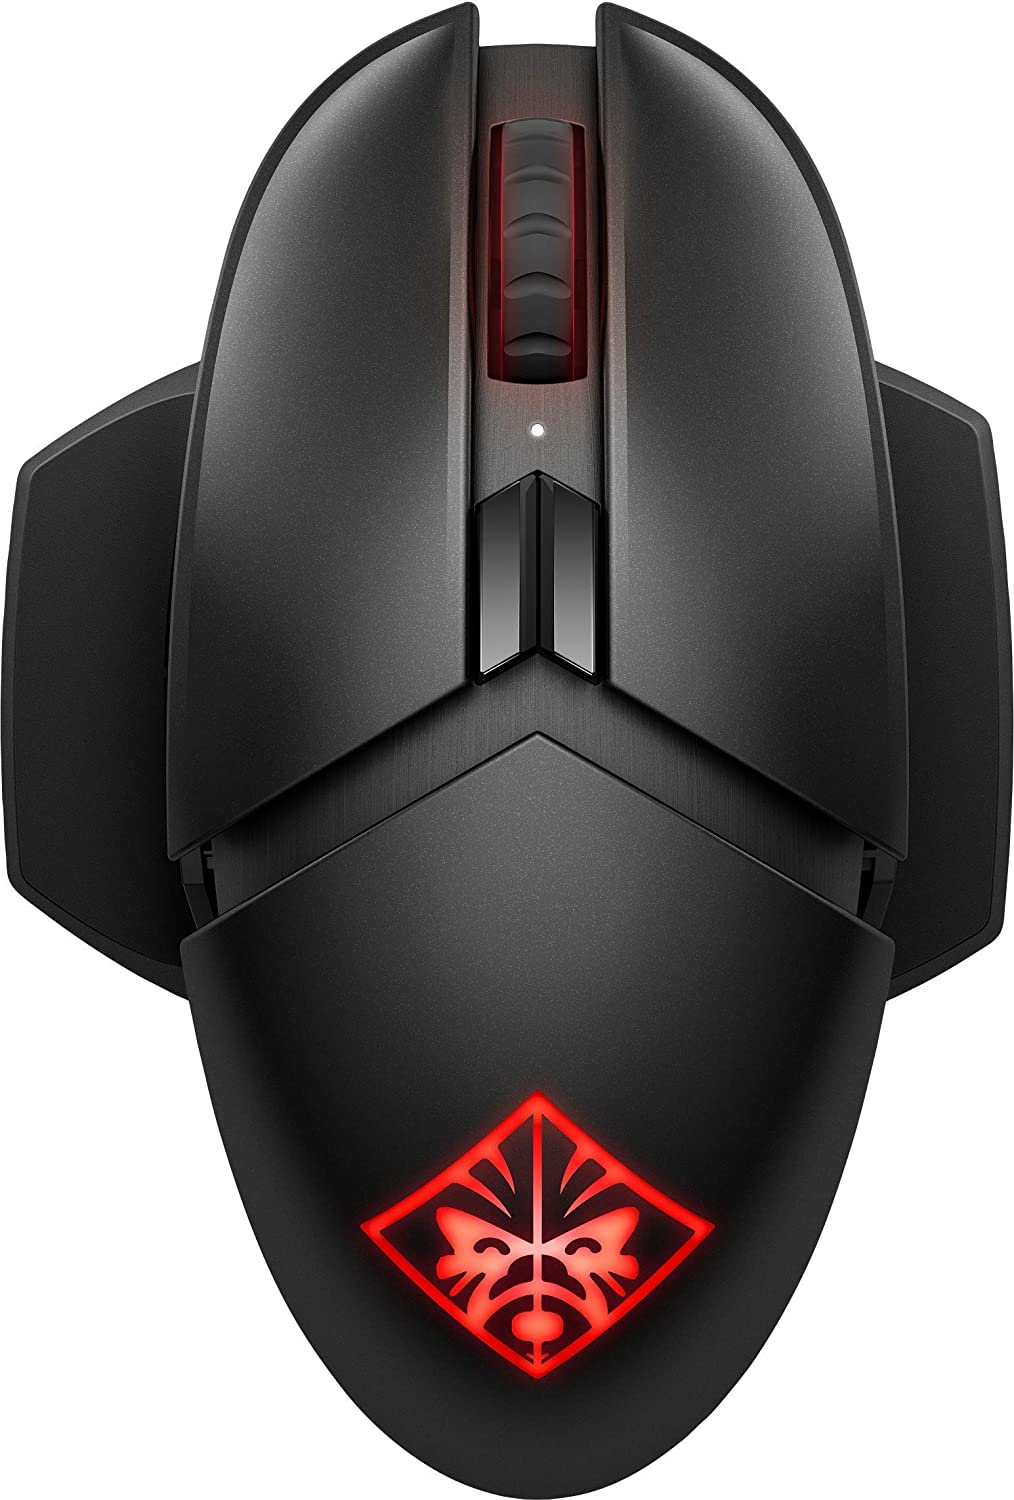 Omen by HP Photon Wireless Gaming Mouse with Qi Wireless Charging, Programmable Buttons, E-Sport DPI, and Custom RGB Lighting (Black)